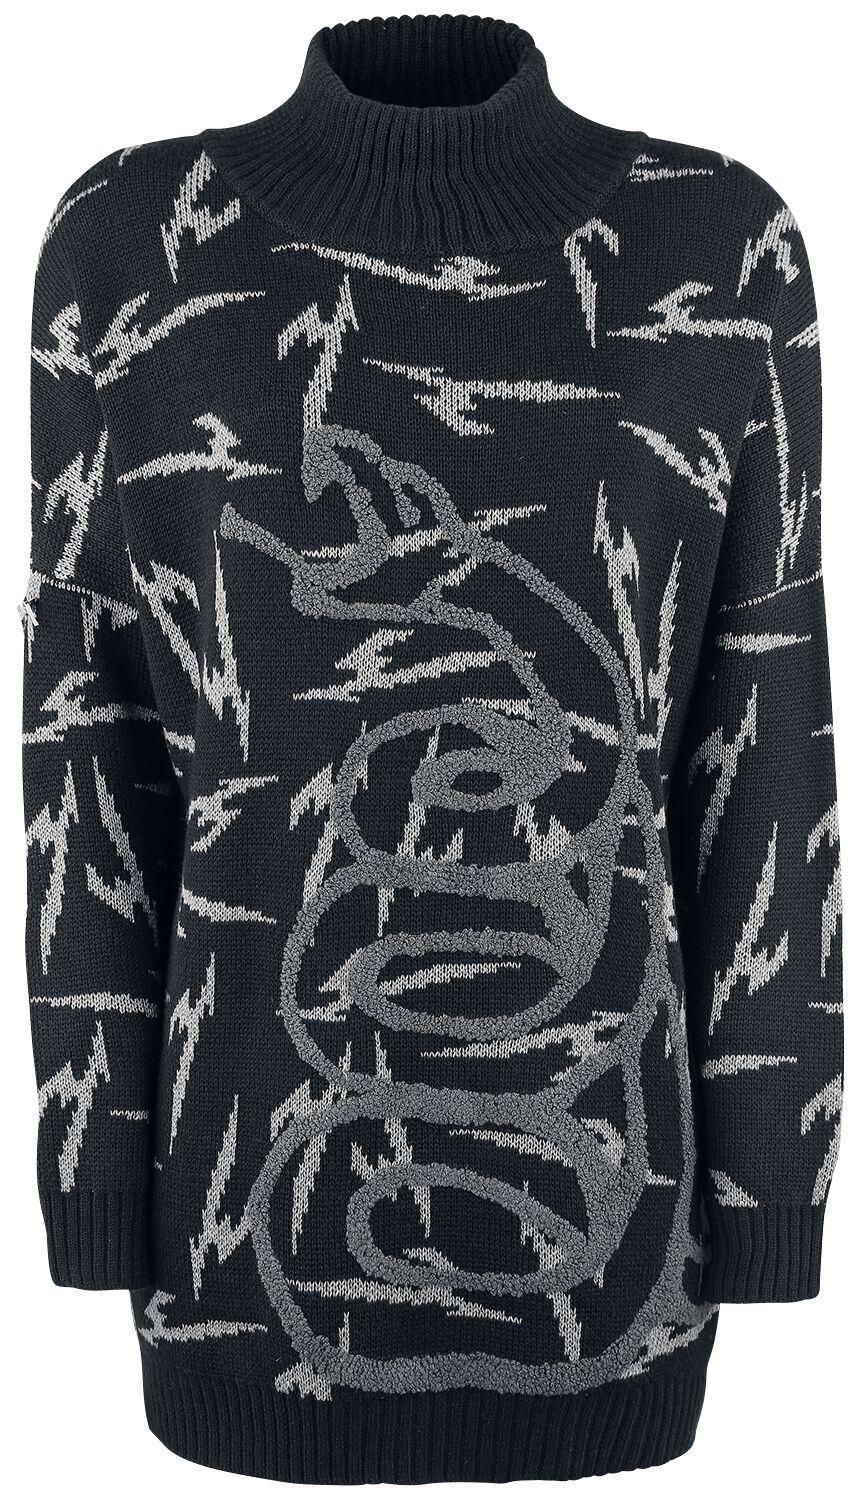 Image of   Metallica EMP Signature Collection Girlie turtleneck sweater sort